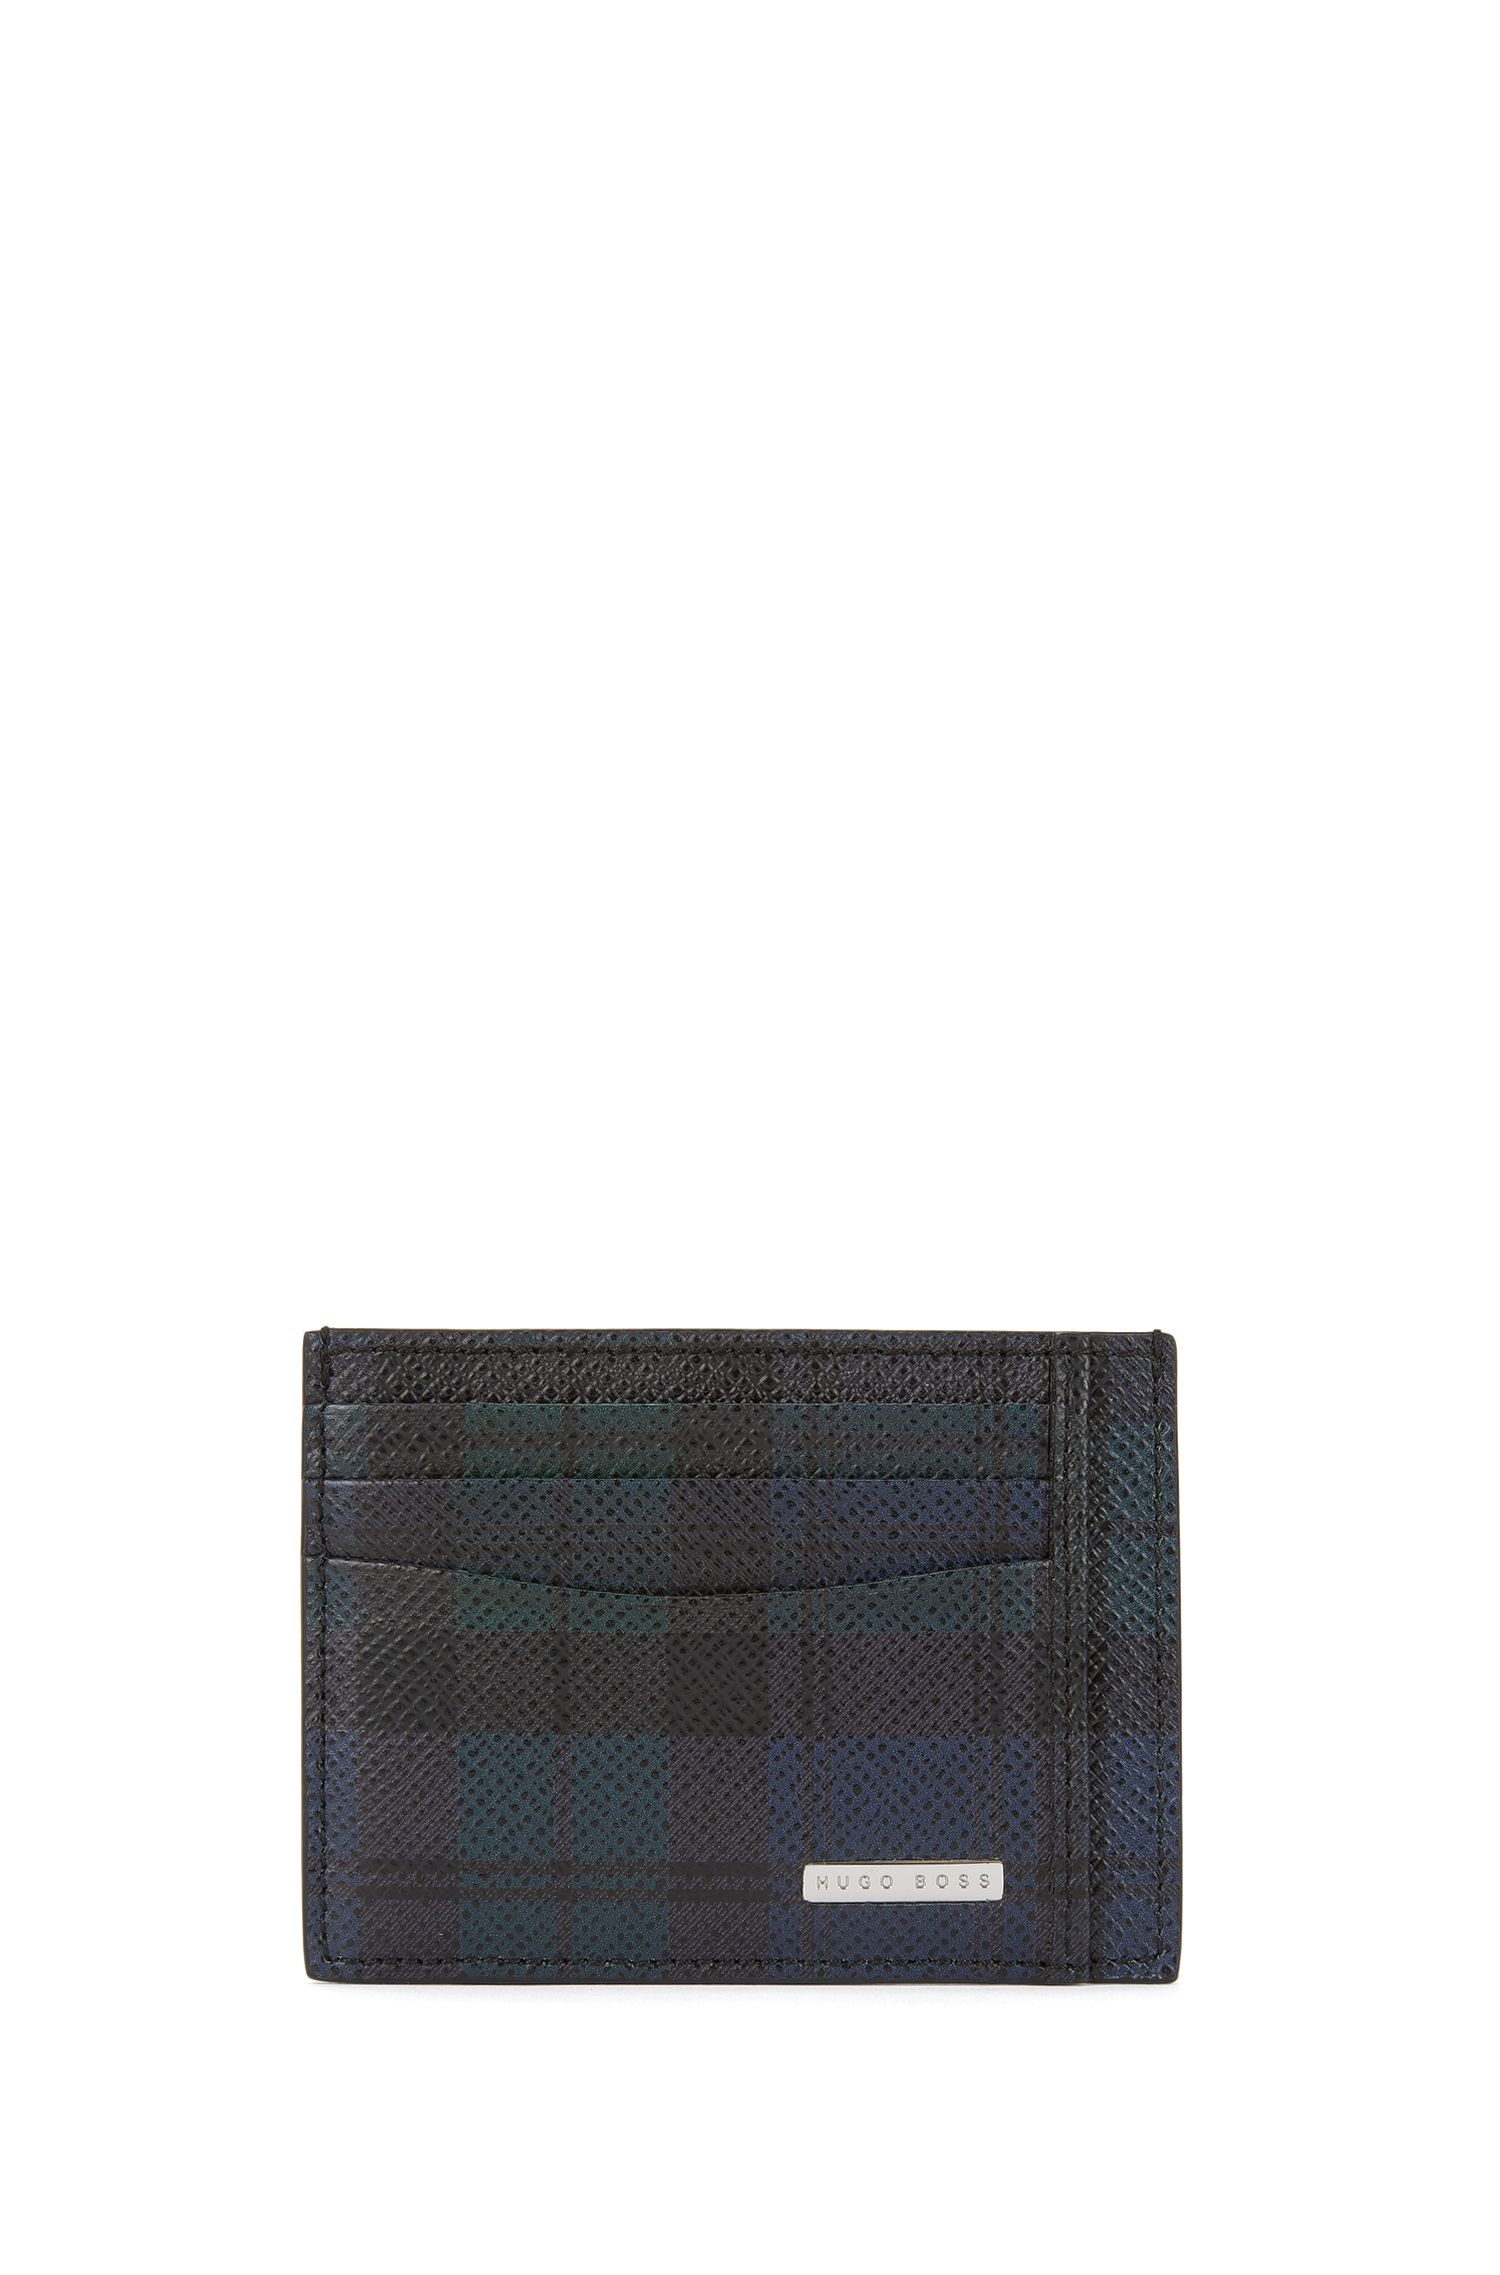 Porte-cartes Signature Collection en cuir palmellato à imprimé tartan